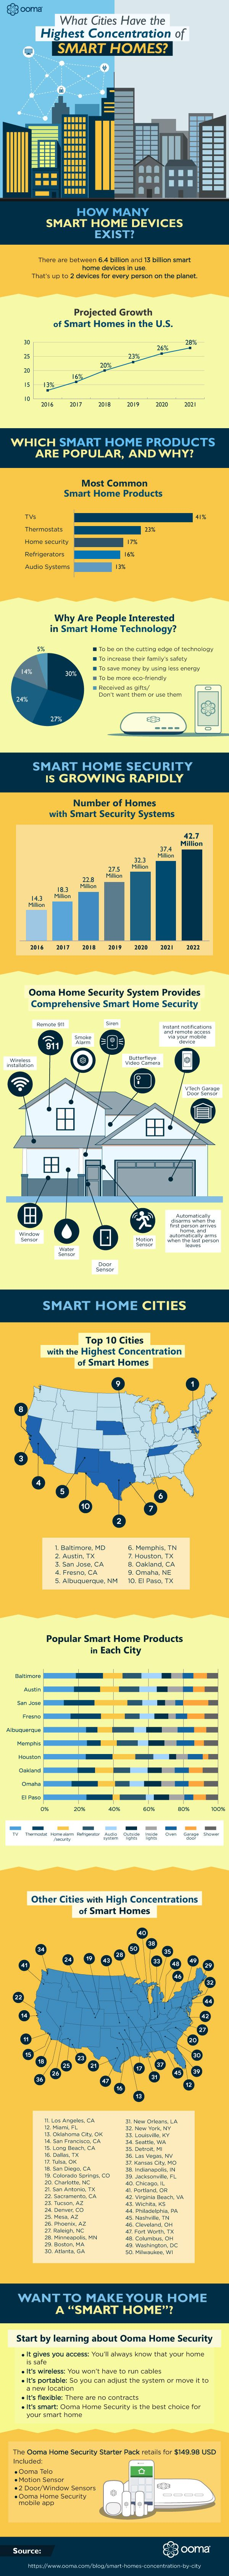 What Cities Have the Highest Concentration of Smart Homes?